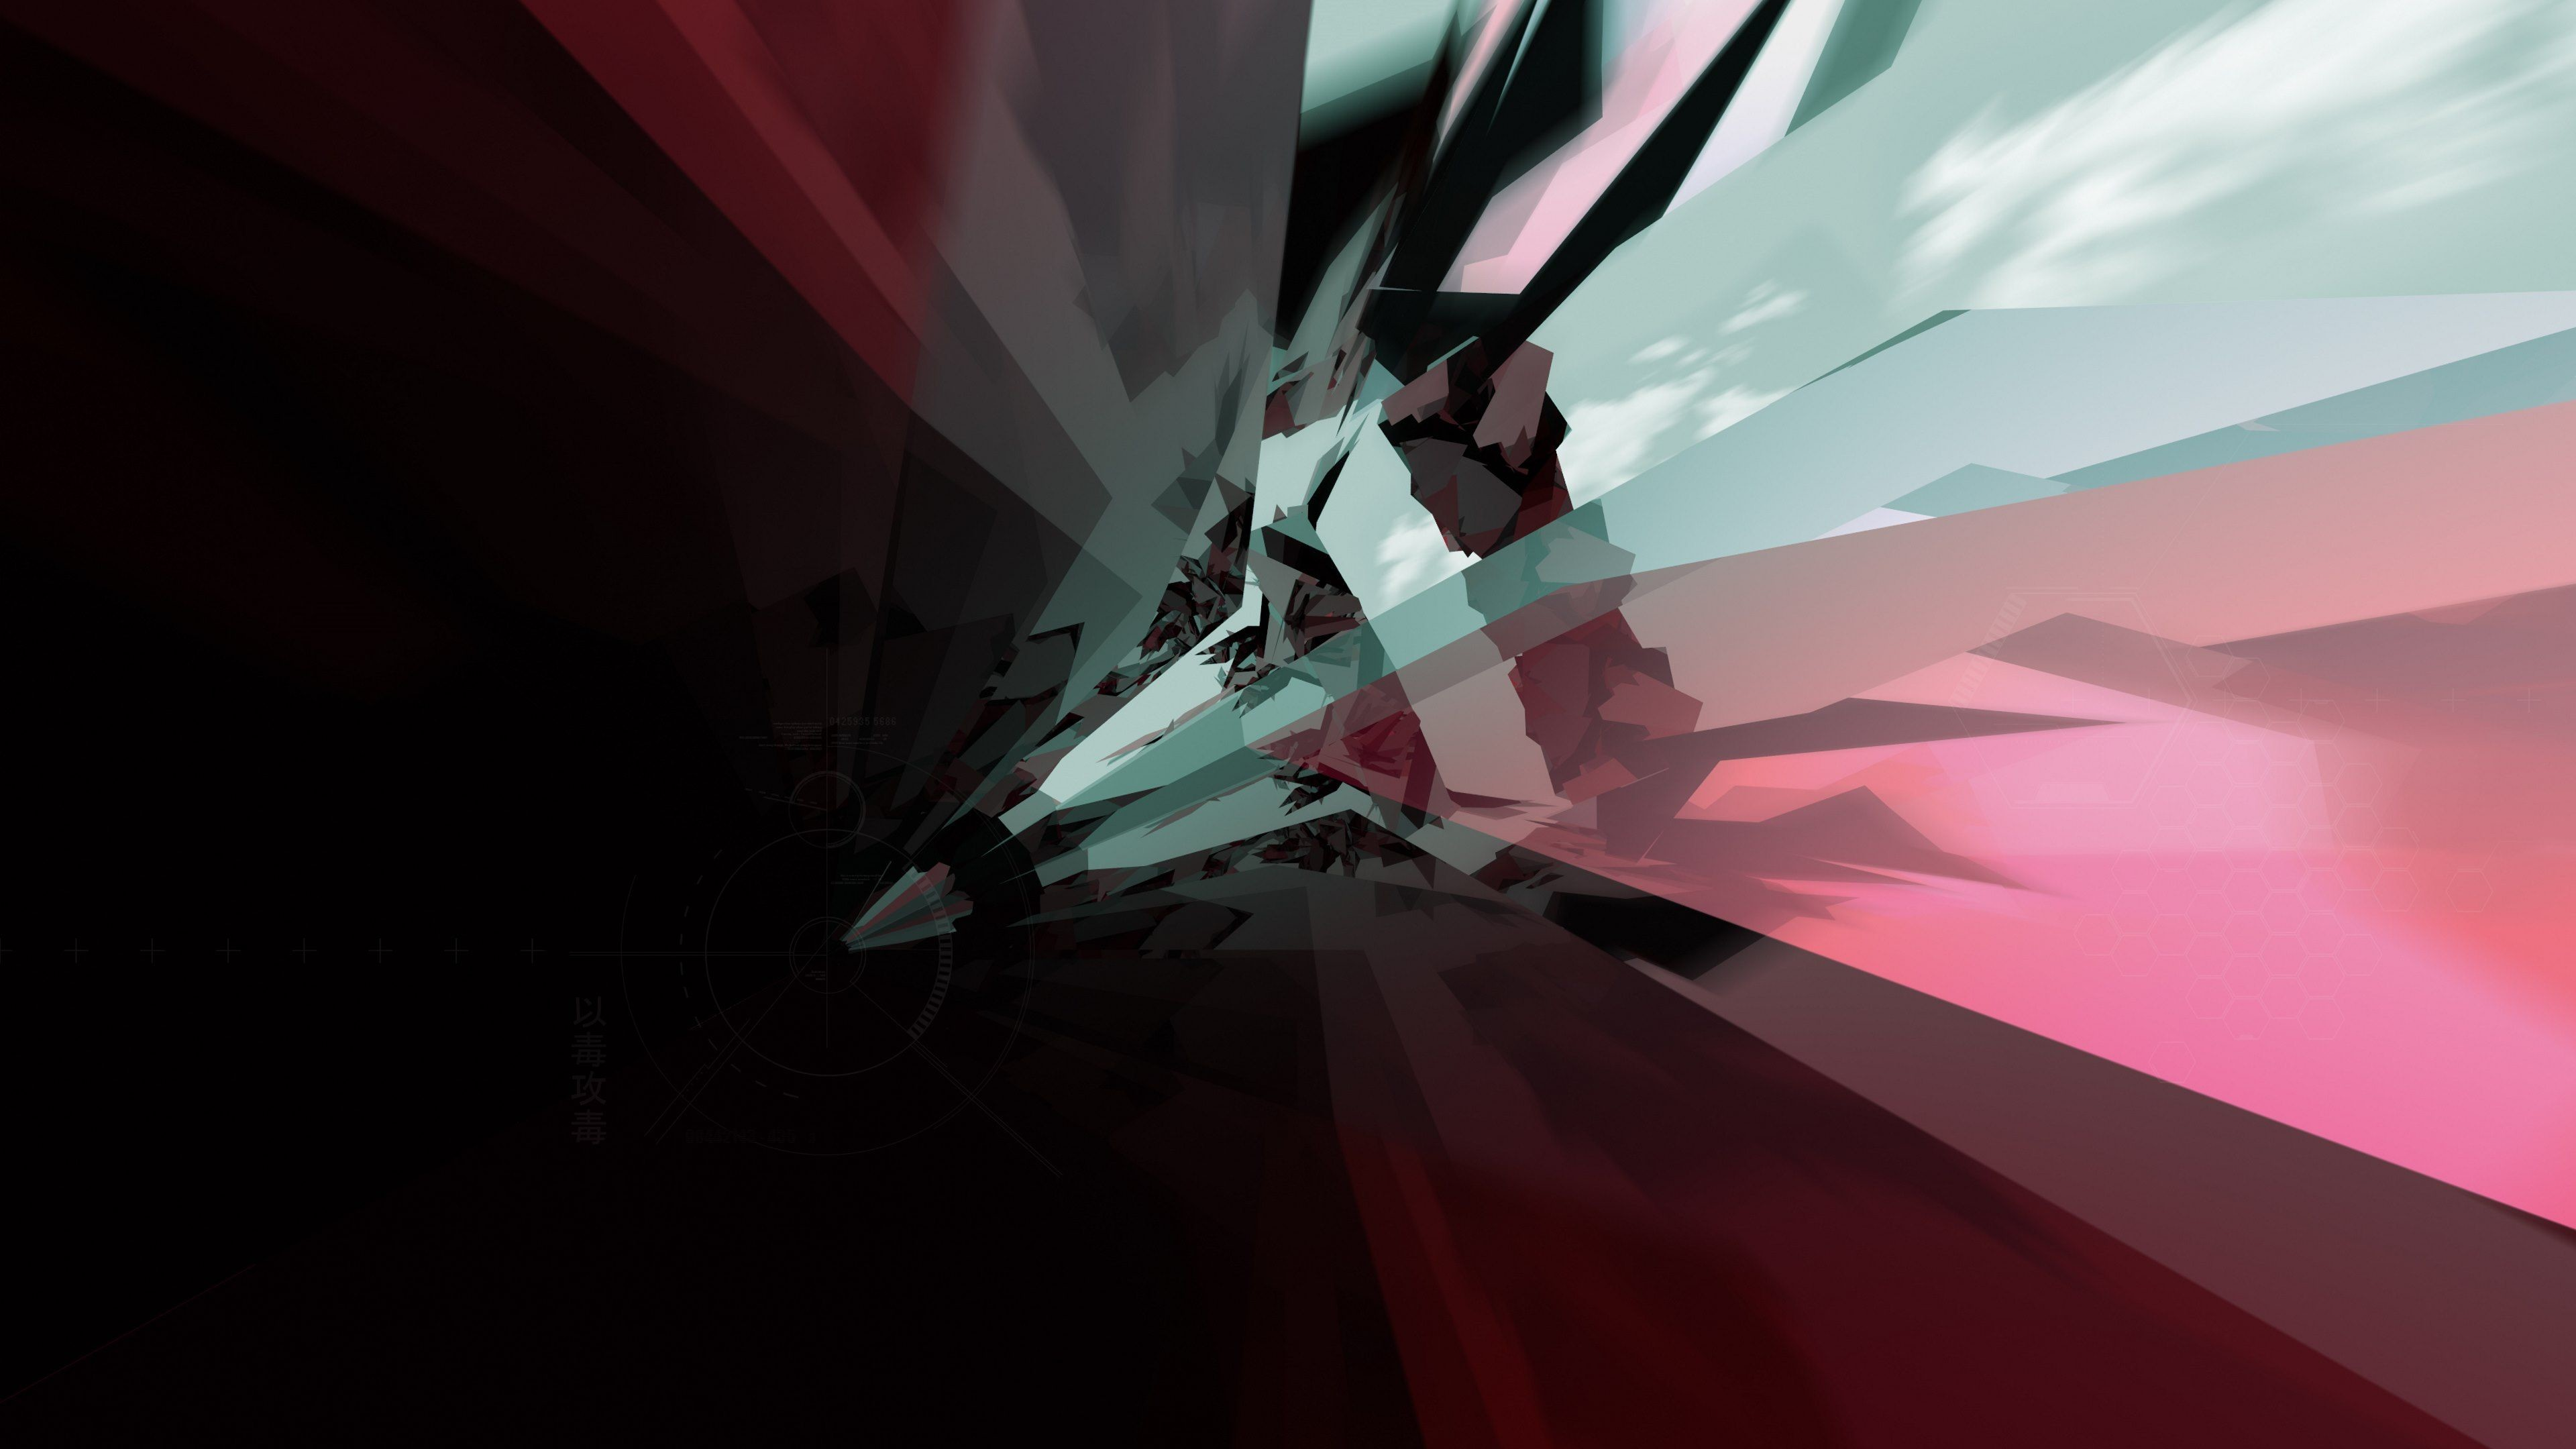 4k Abstract HD Background Wallpapers 11758 – HD Wallpapers Site